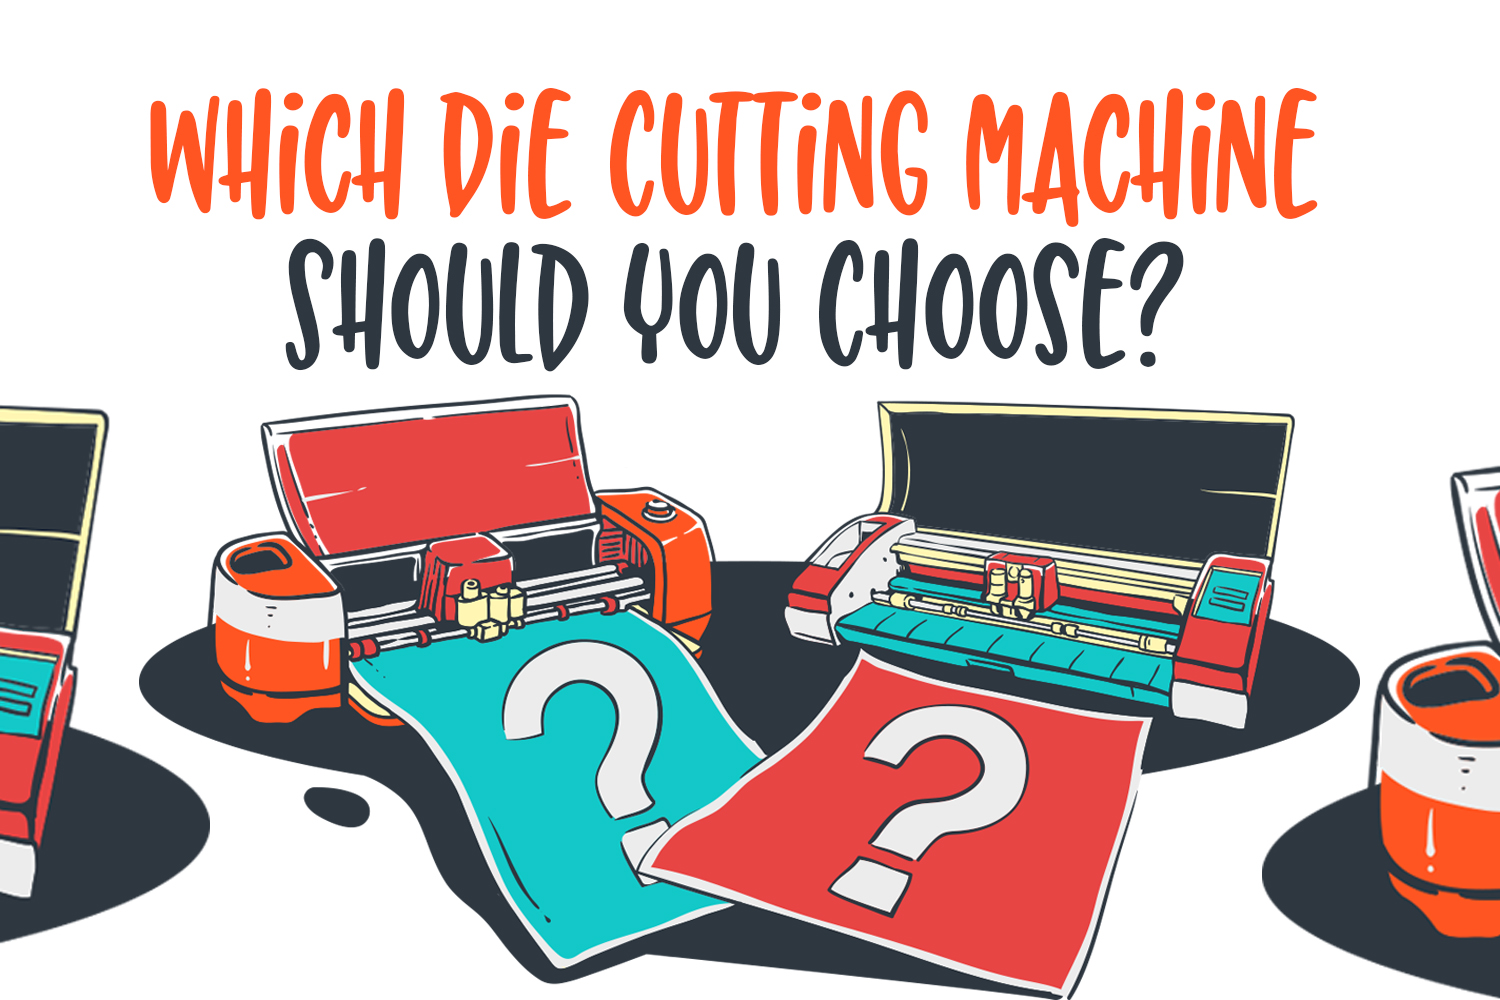 Which Die Cutting Machine Should You Choose?